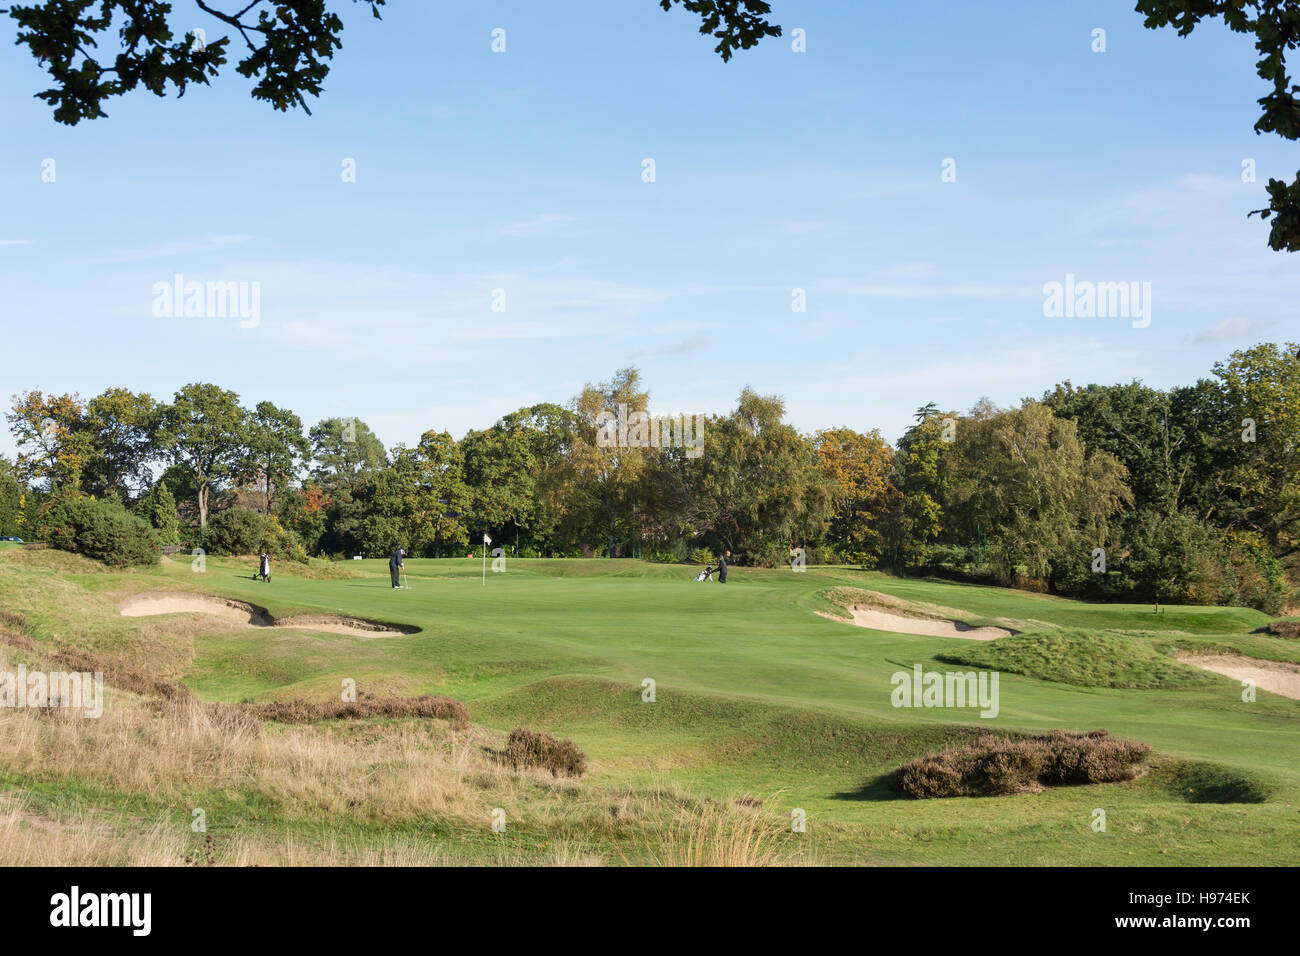 Green with bunkers, Sunningdale Golf Course, Sunningdale, Berkshire, England, United Kingdom - Stock Image